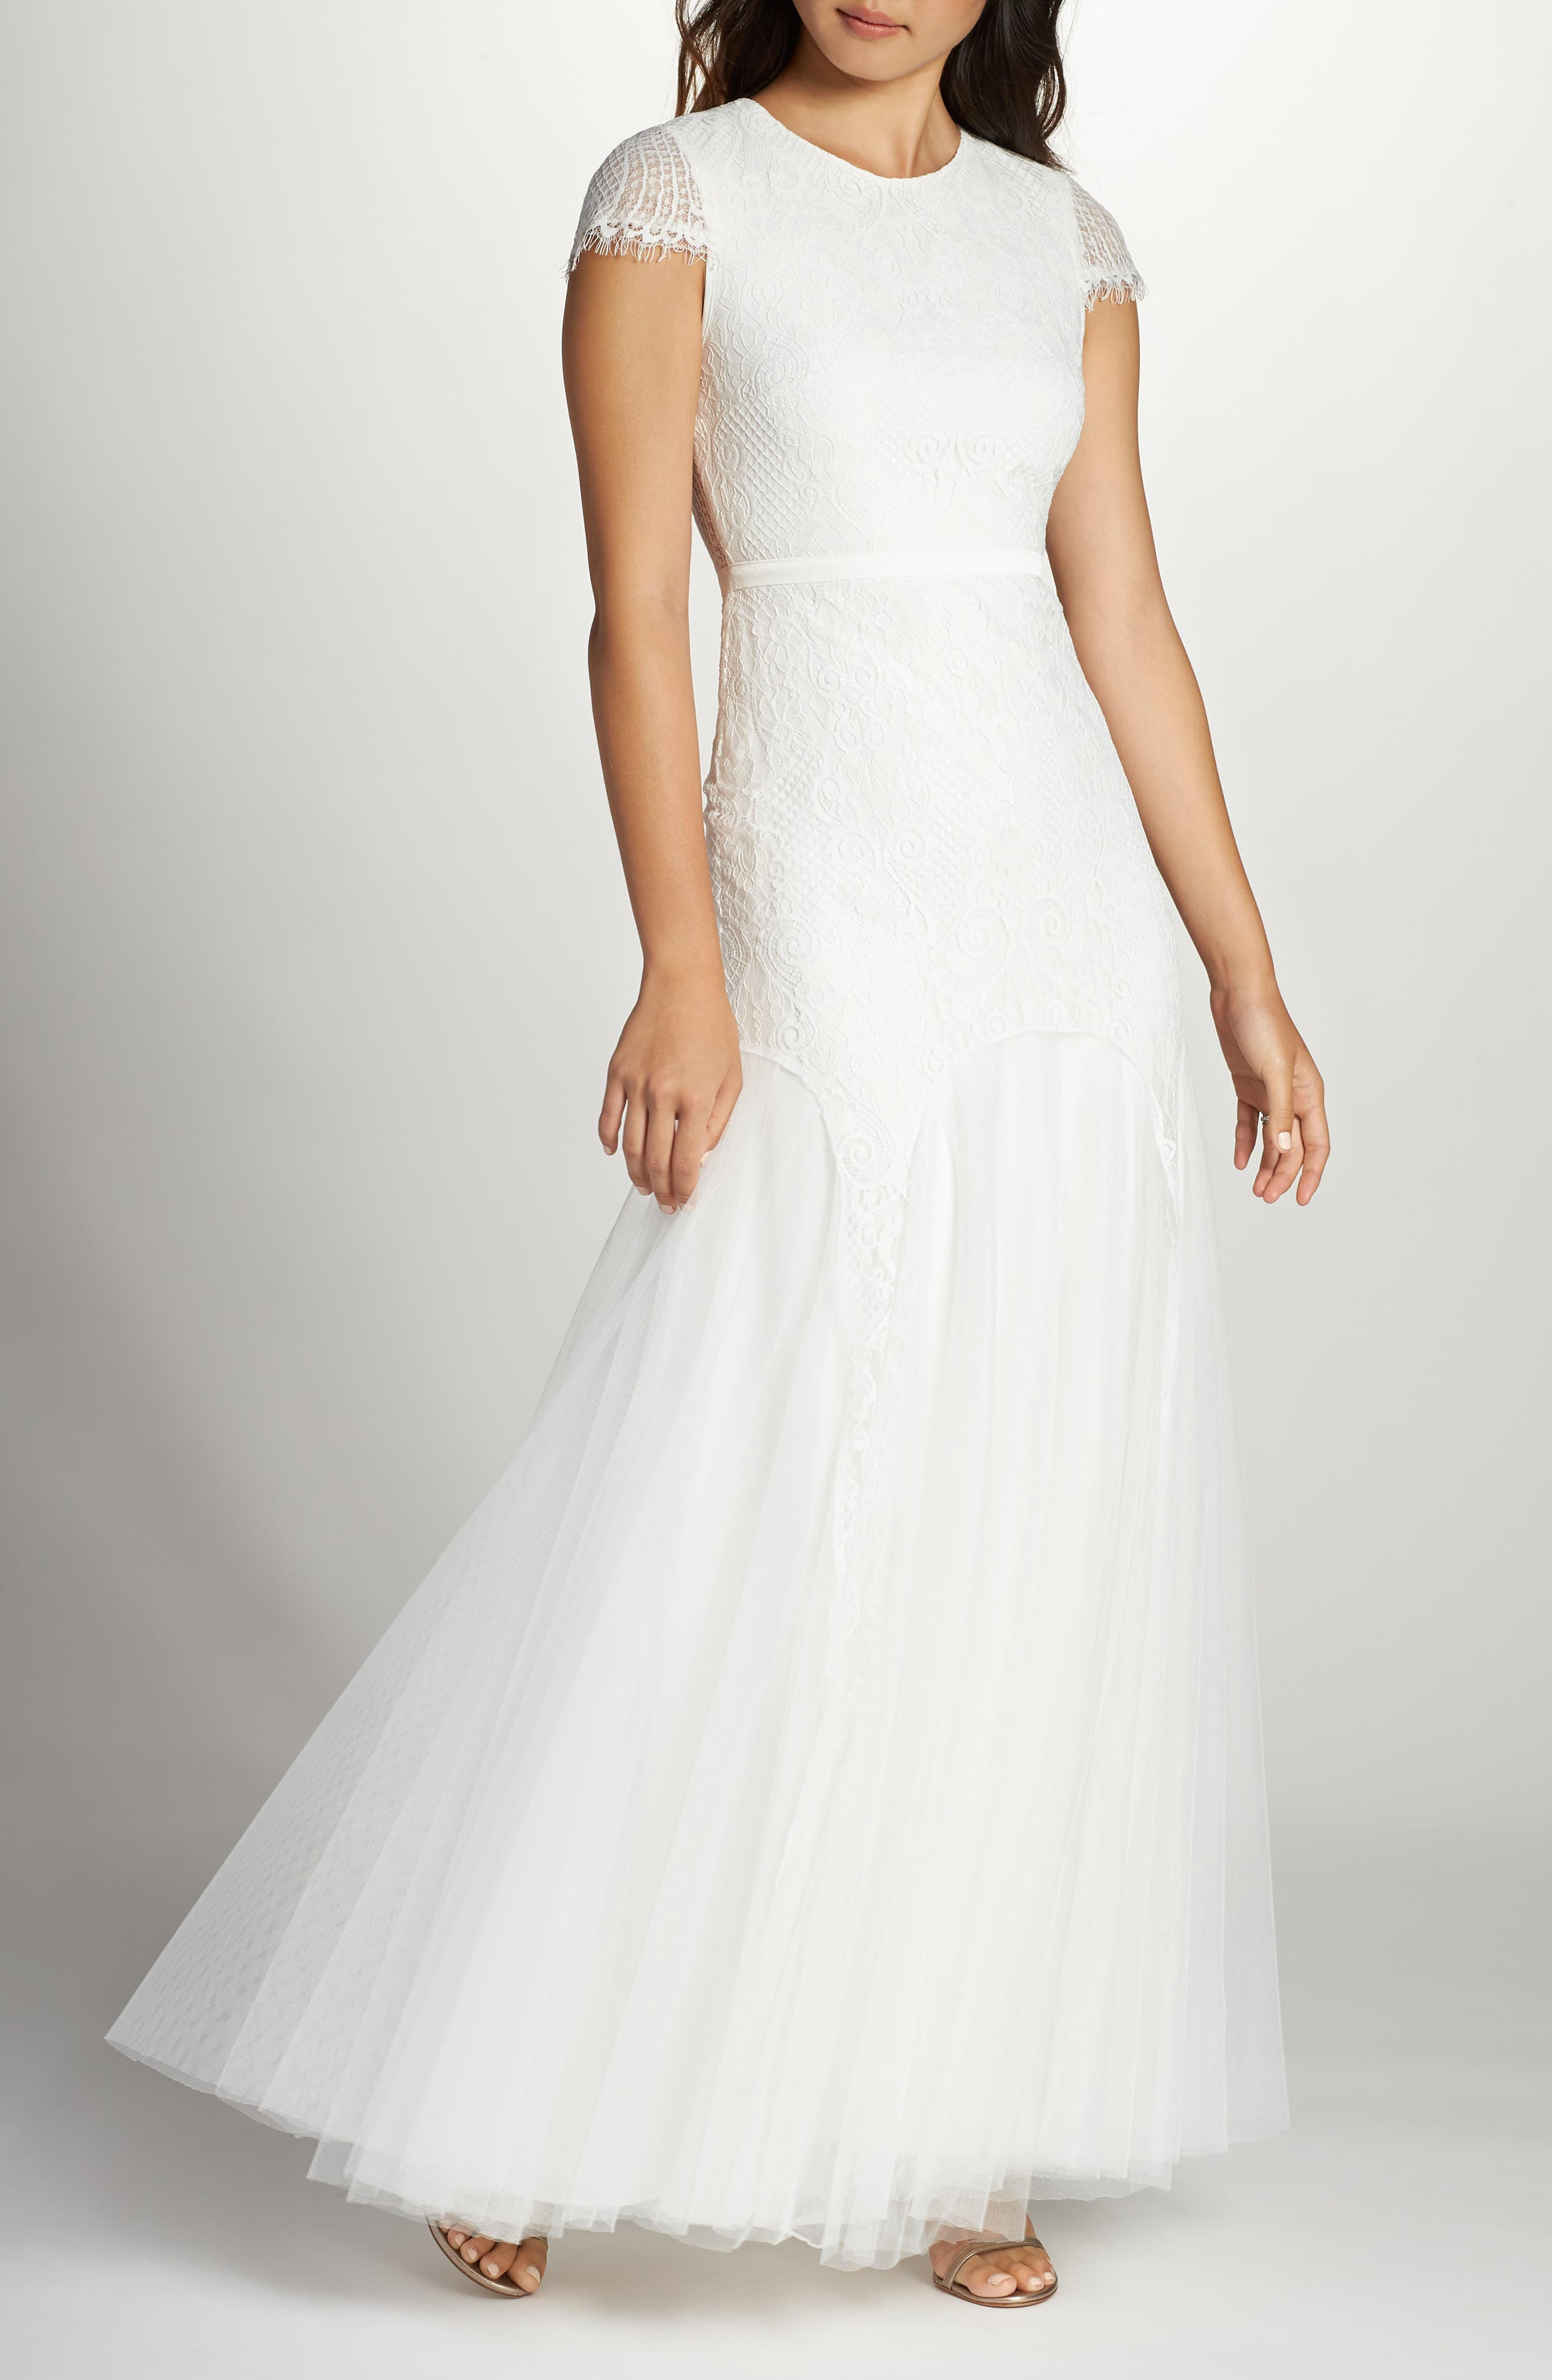 Fame & Partners Denevue Lace & Tulle A-Line Gown, White